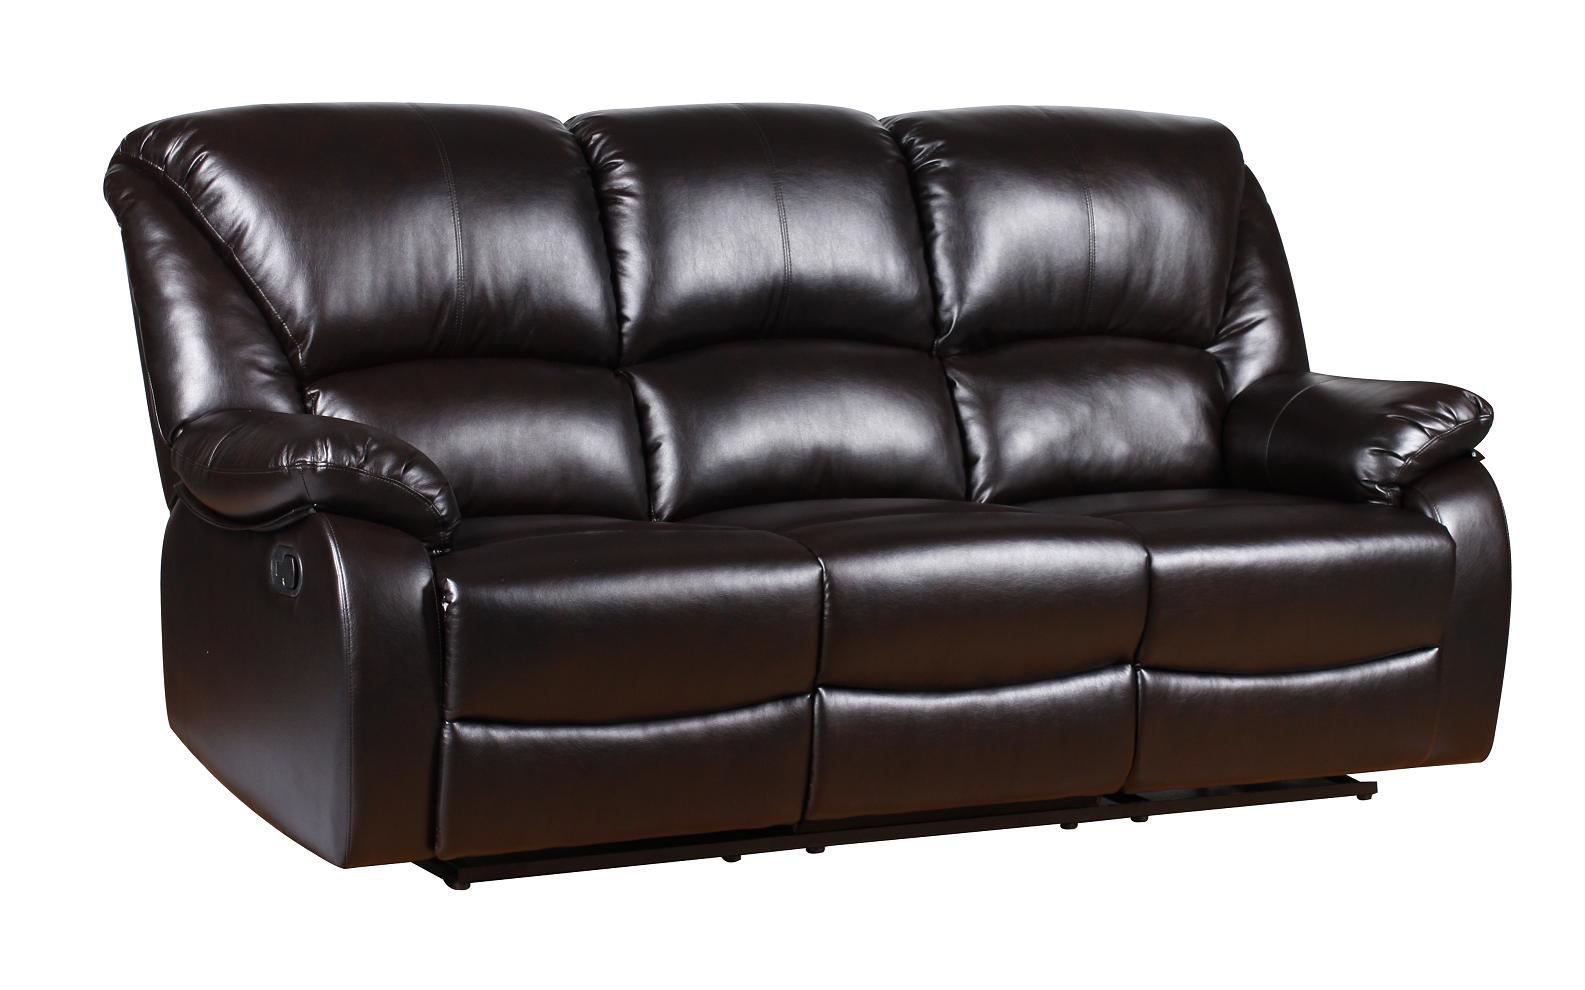 vine brown leather sofa ebay arm covers dunelm new luxury valencia bonded recliner suite